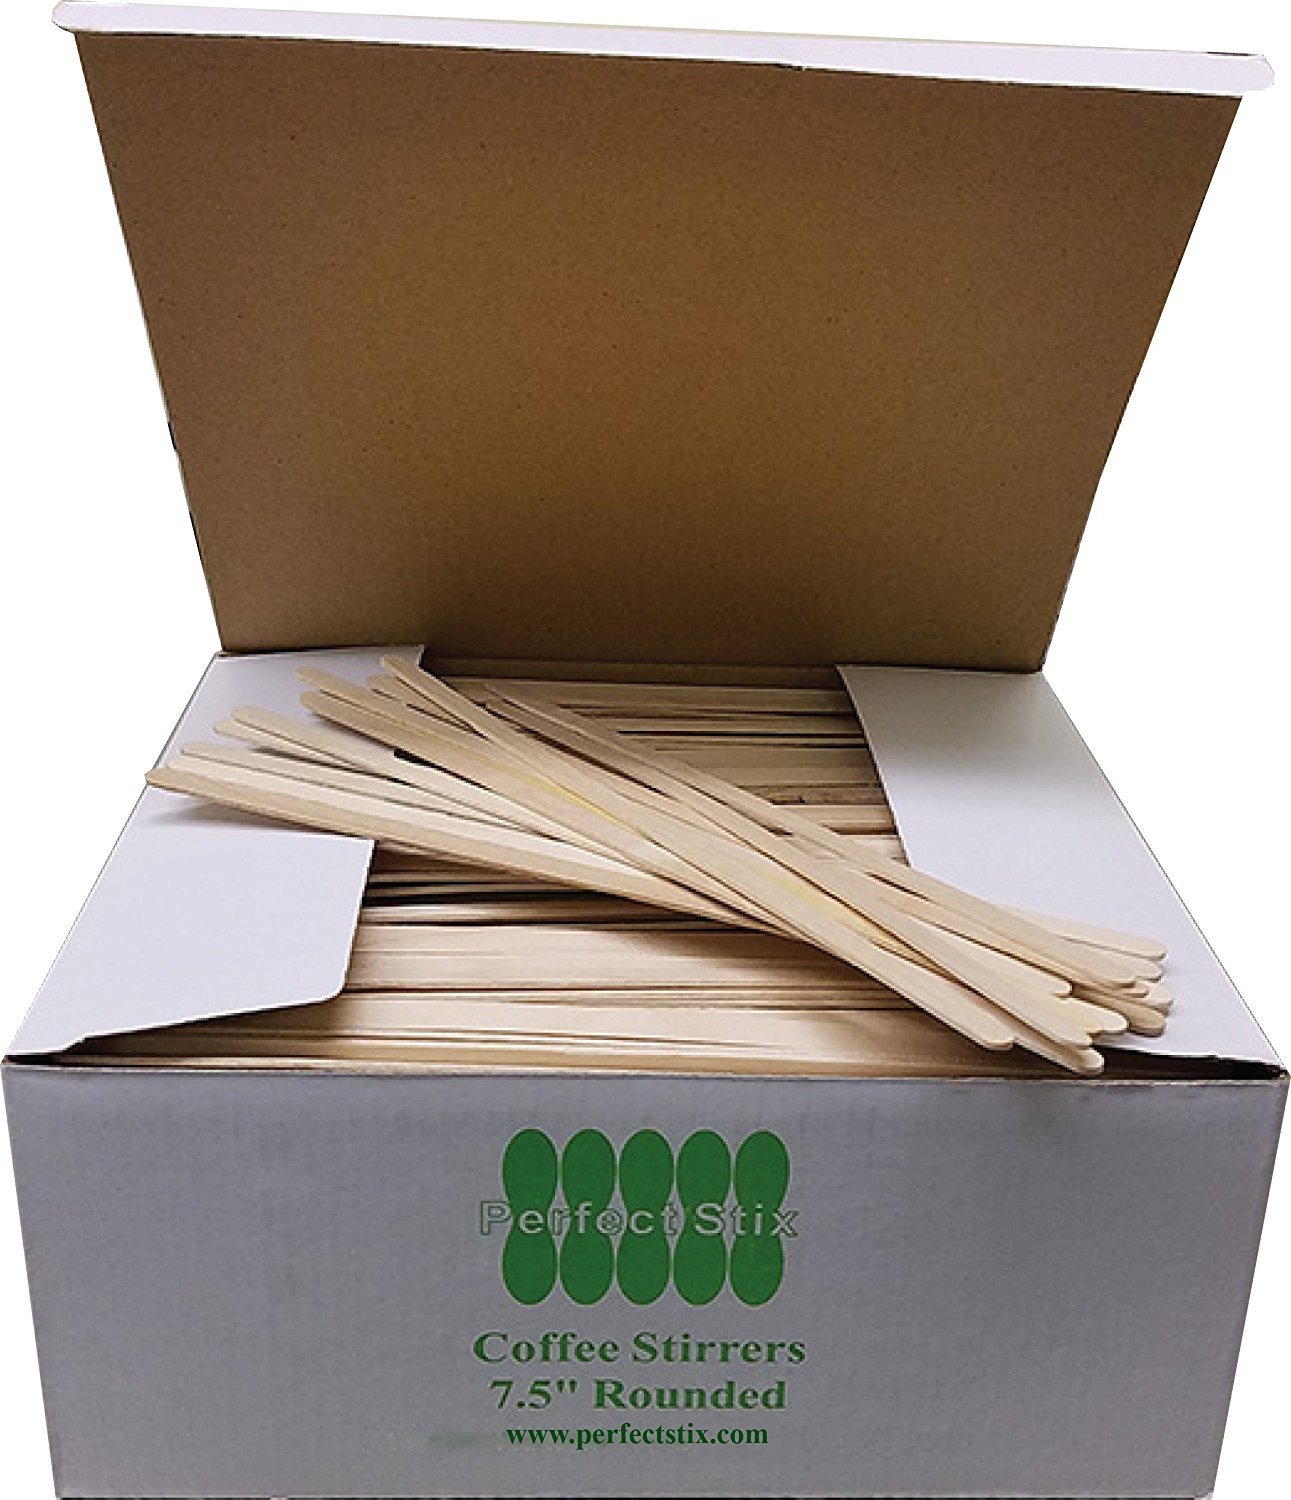 Perfect Stix Wooden Coffee Stirrer Stix, 7-1/2'' Length (Pack of 10,000)